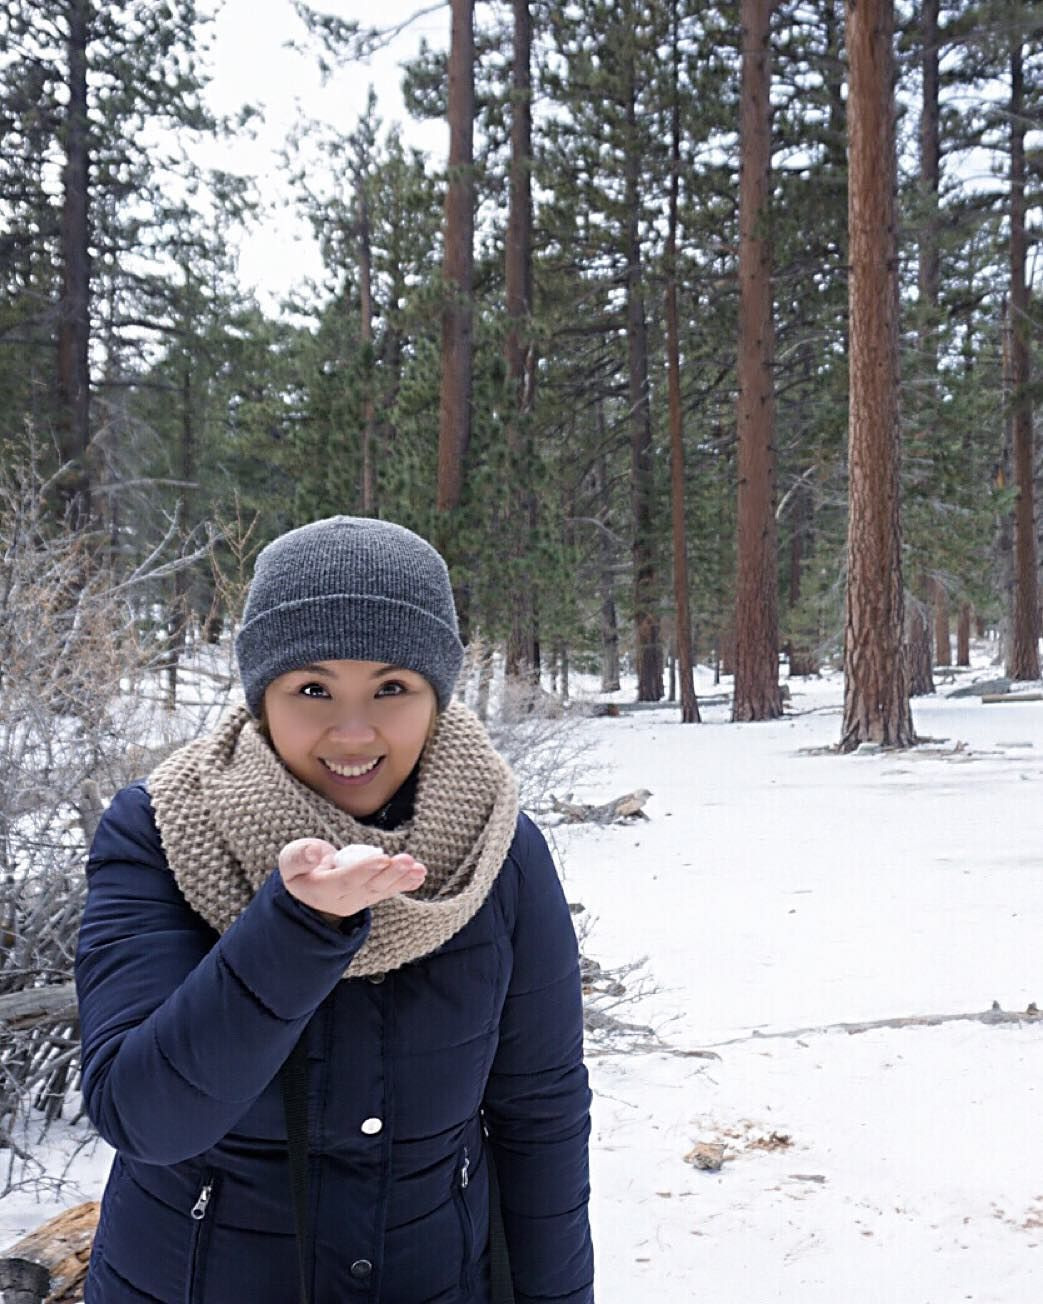 Who said it doesn't snow in #California? At least on top of Mount San Jacinto it does! Here's to my first snow/snow fall experience! Snowflakes are amazing! #Winter2015